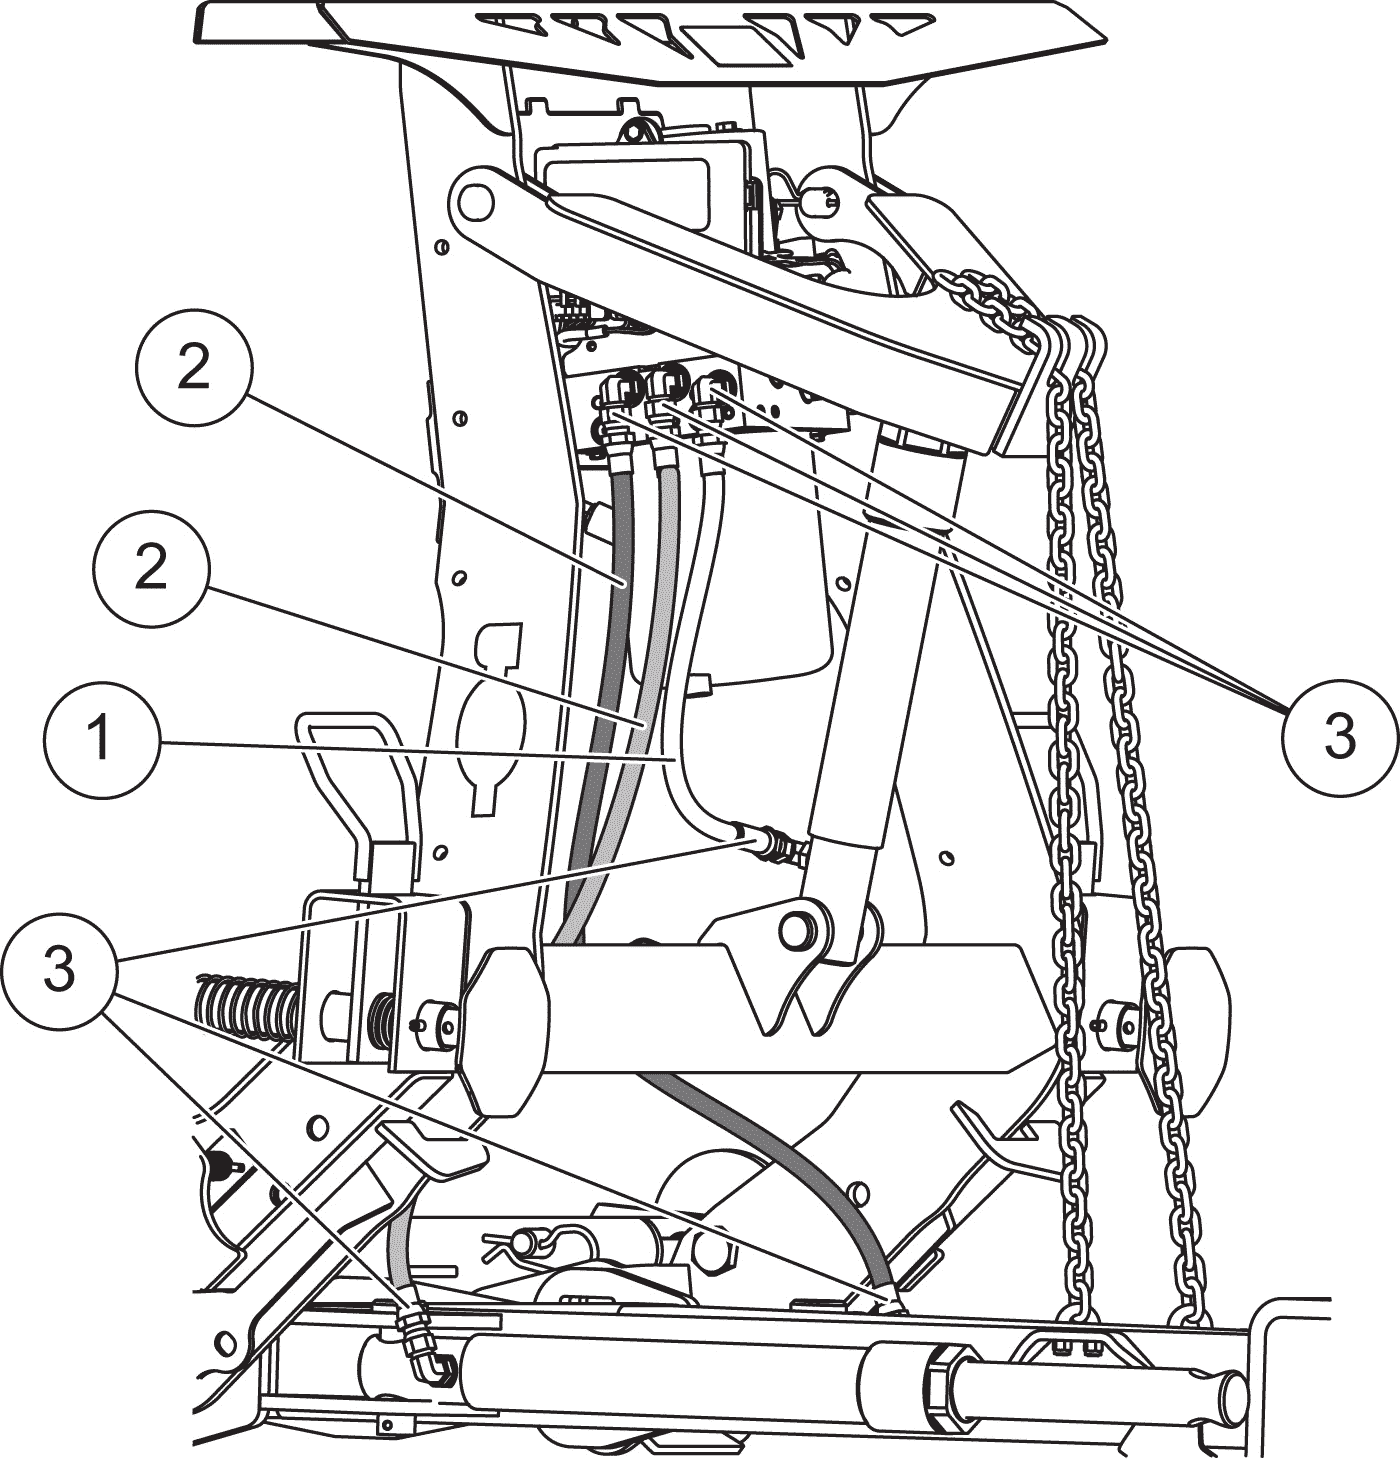 Pro-Plow-and-Pro-Plus-Hoses-and-Fittings-Diagram